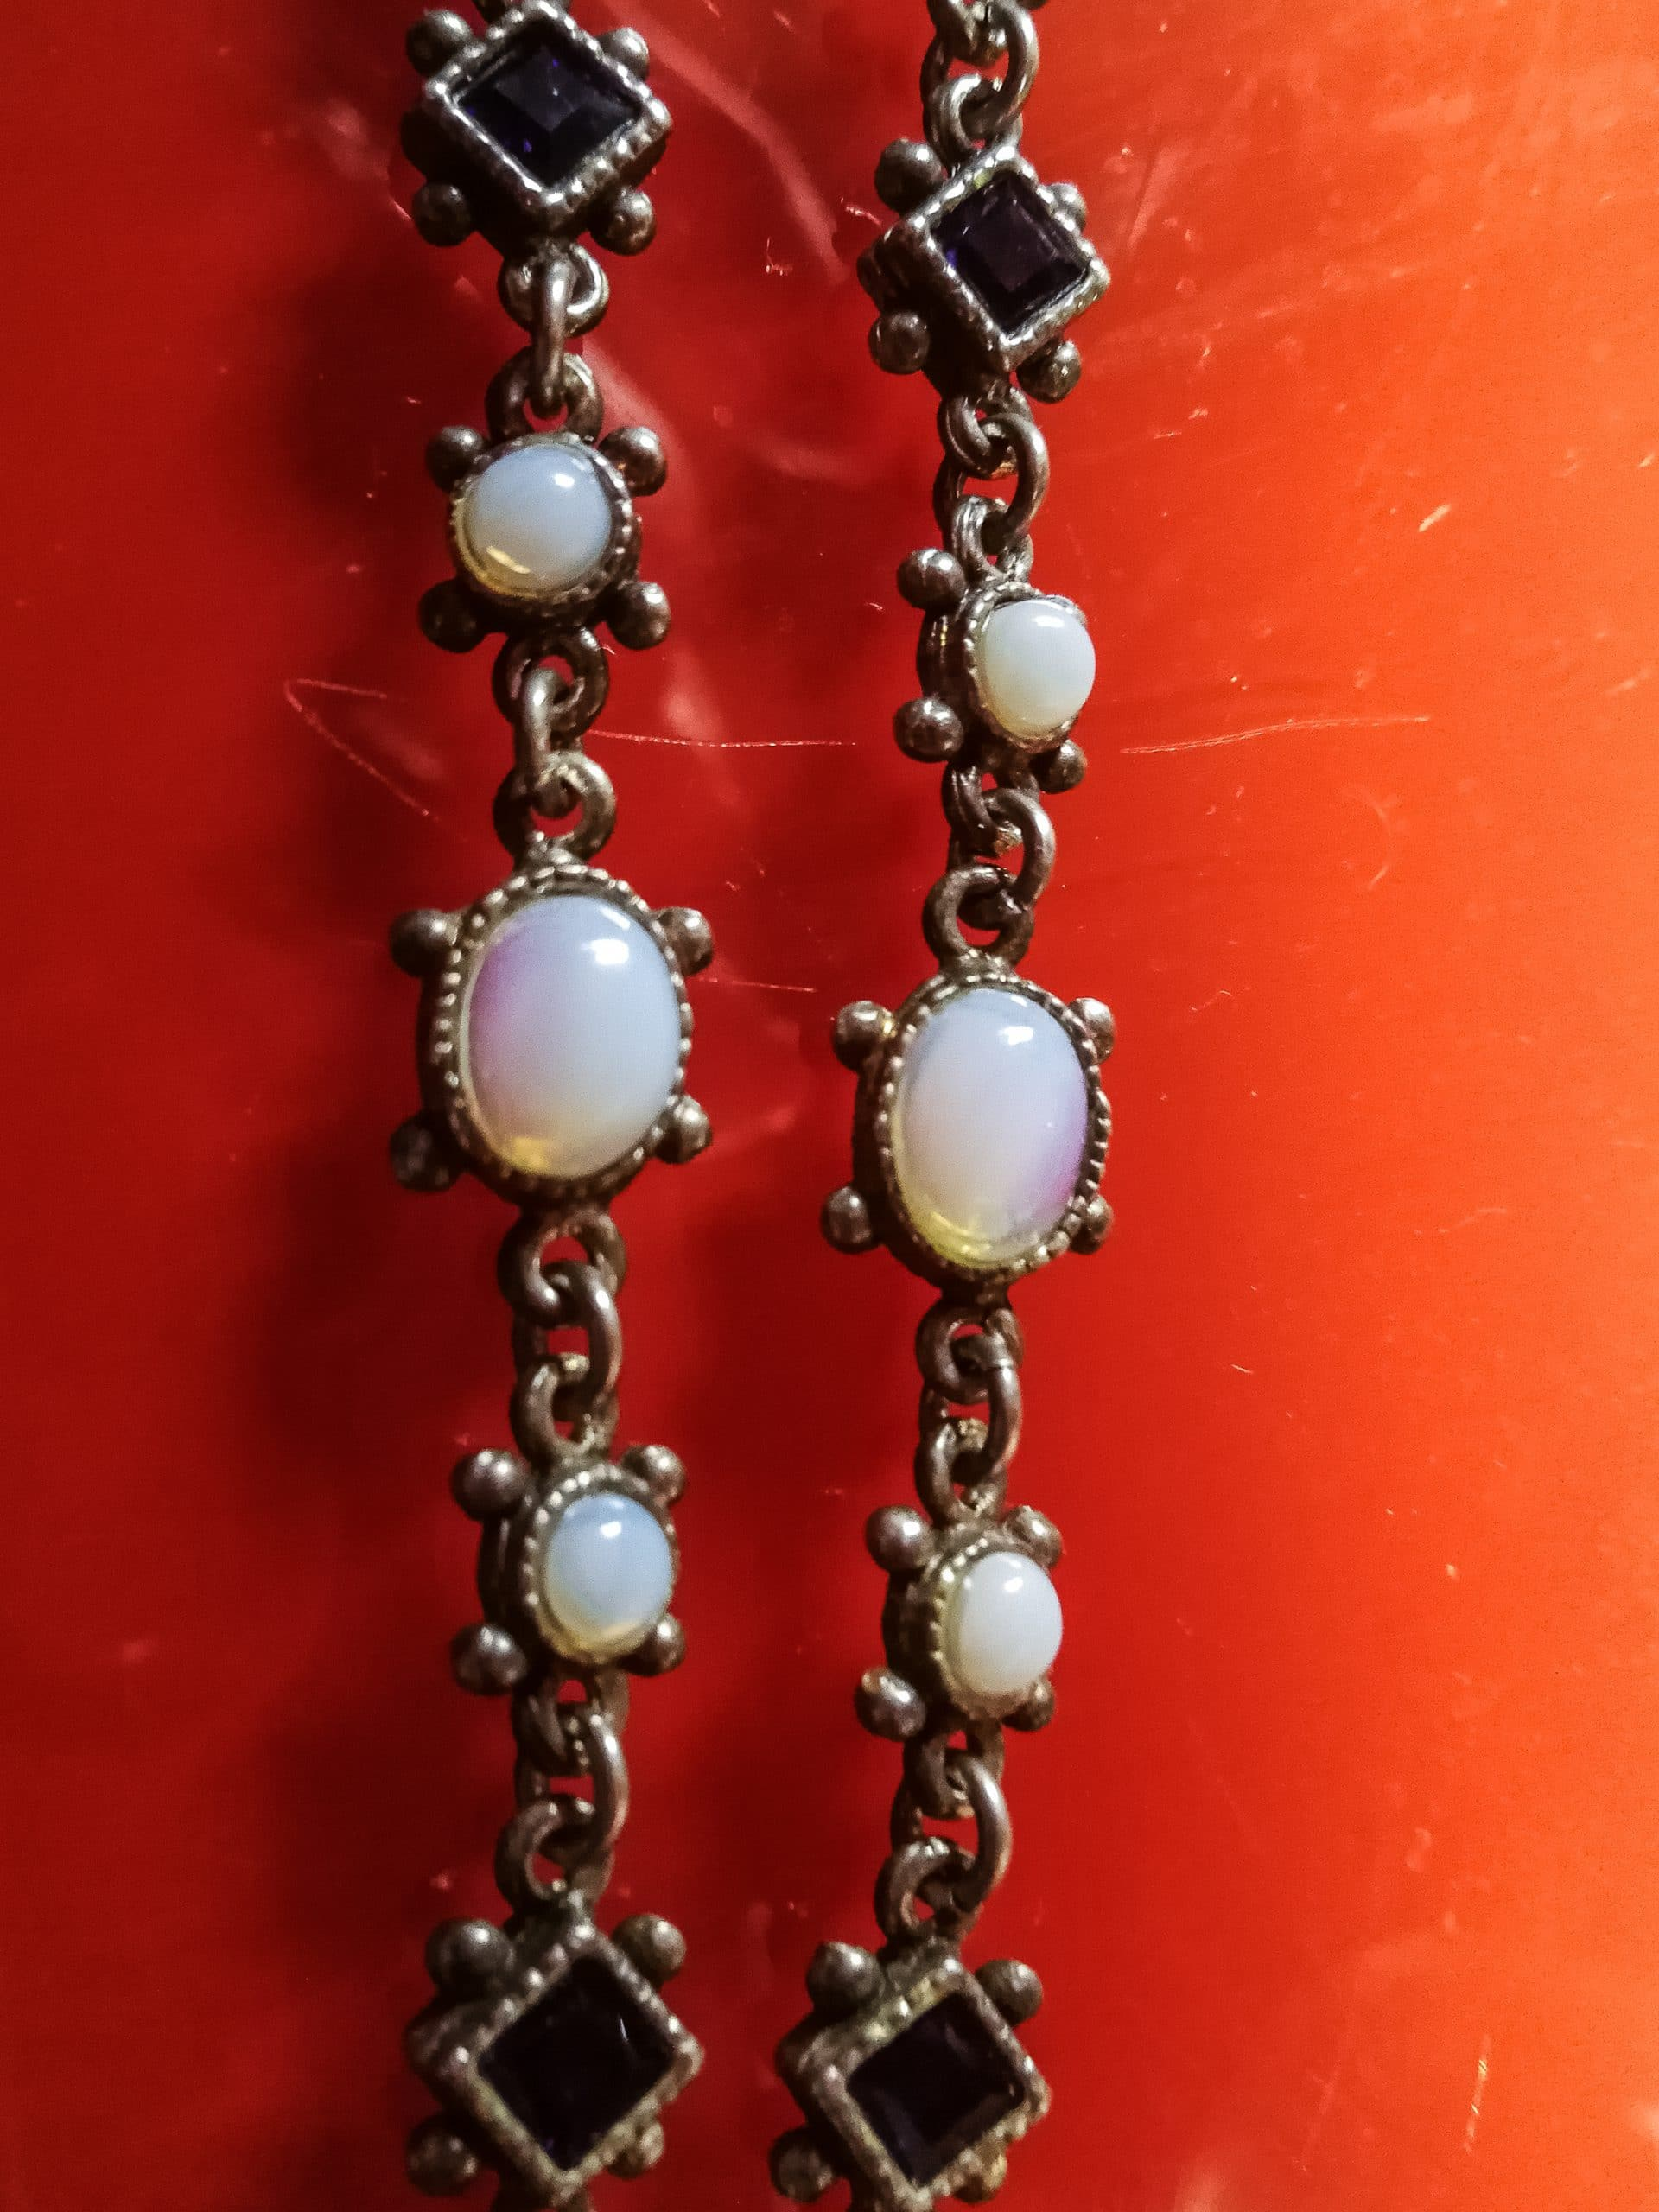 Antique necklace with moonstones